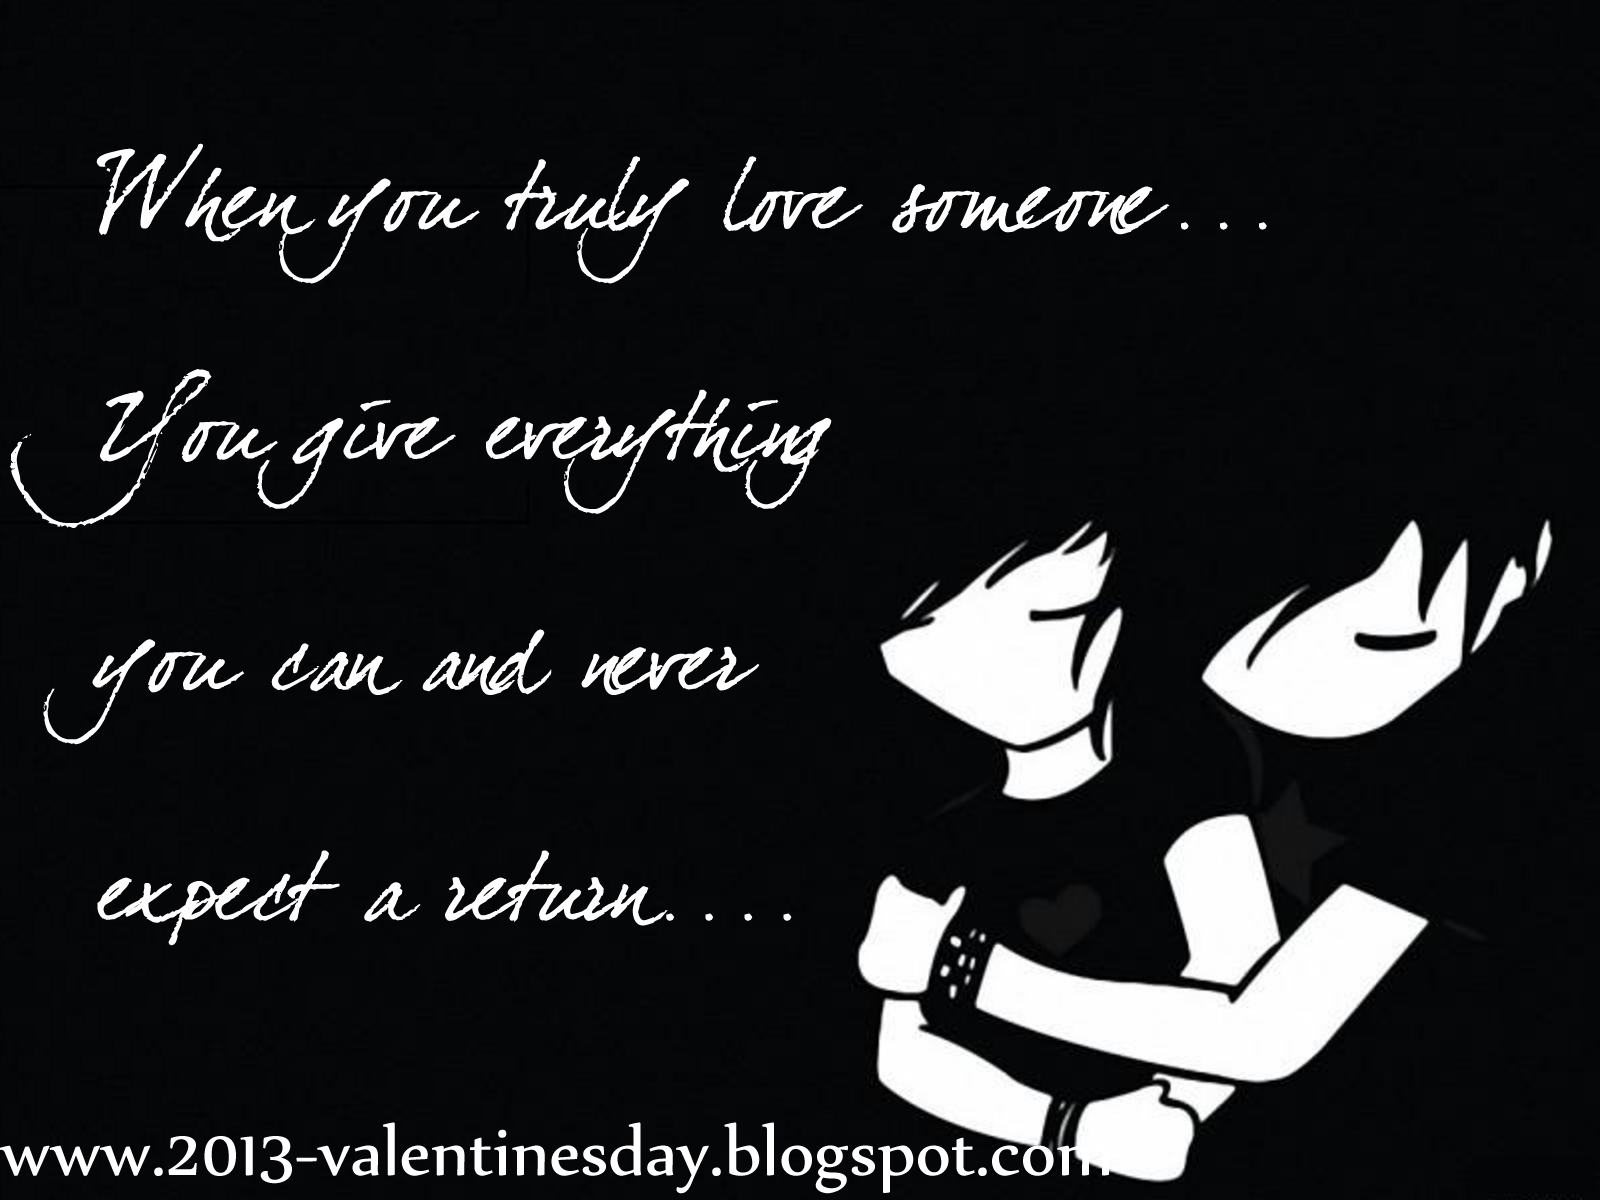 Quotes on Love - I love you Quotes for Valentines day 2013